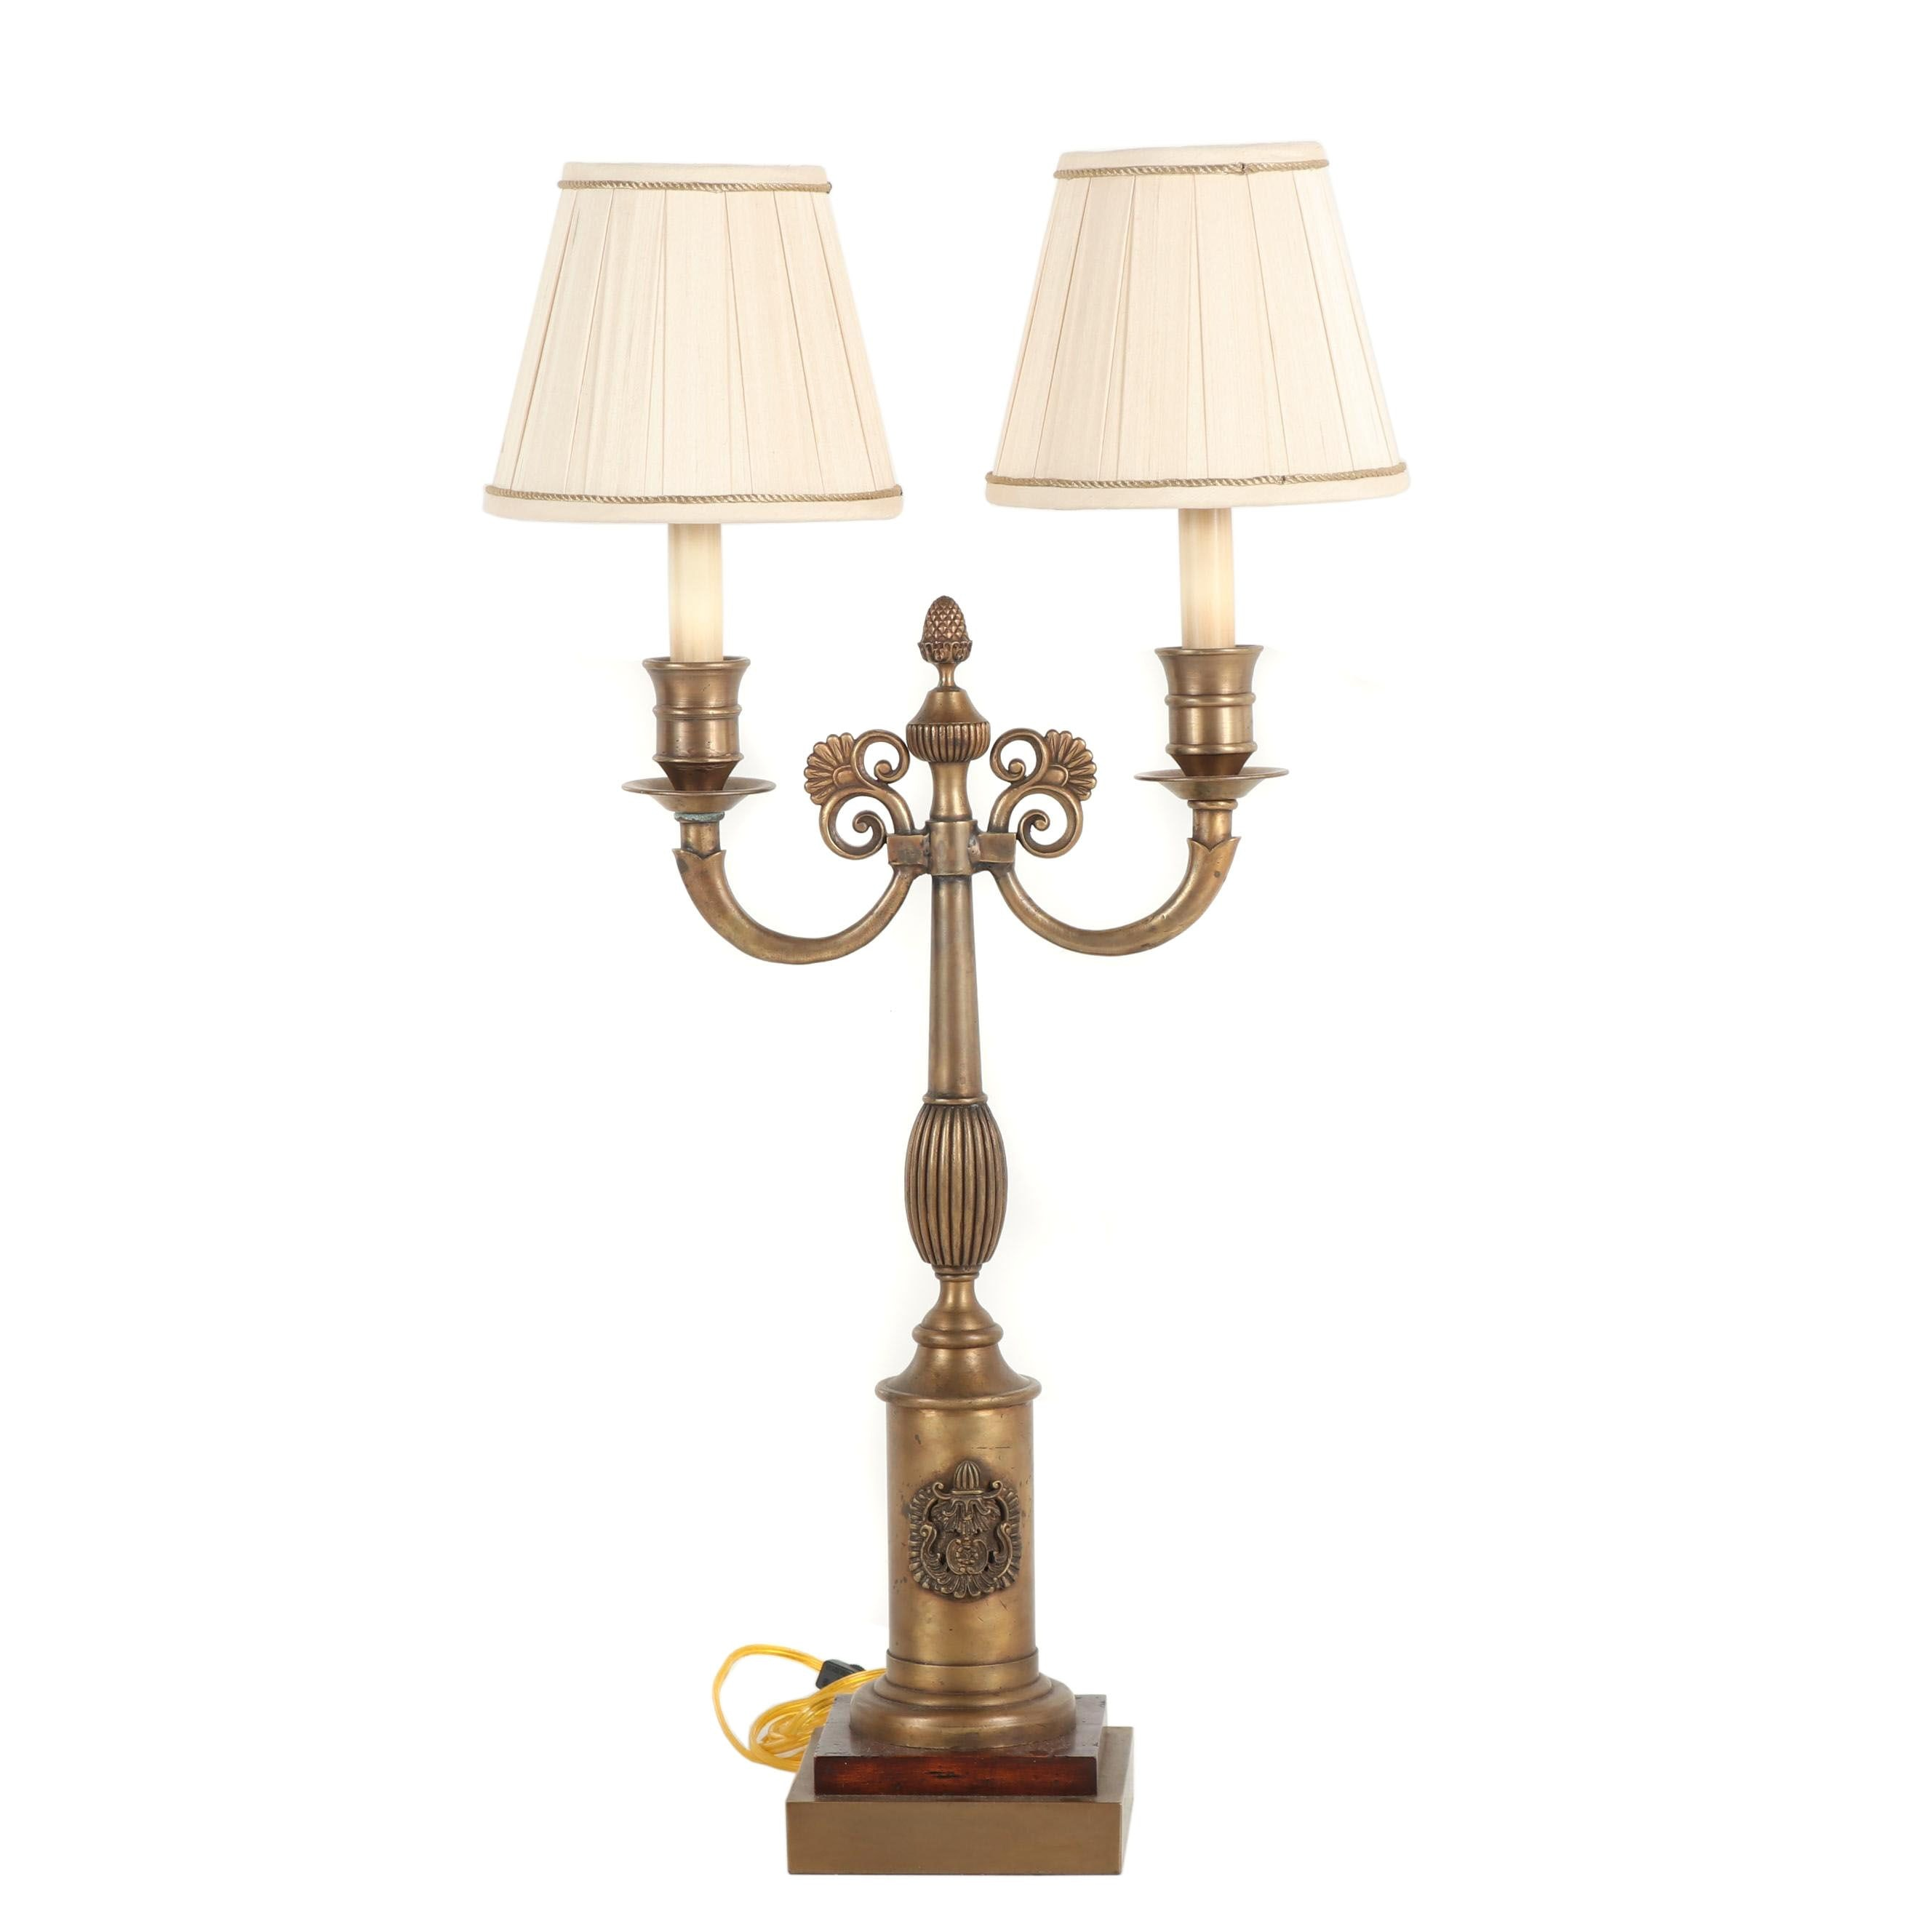 Empire Style Double Headed Brass Table Lamp Attributed to Maitland Smith